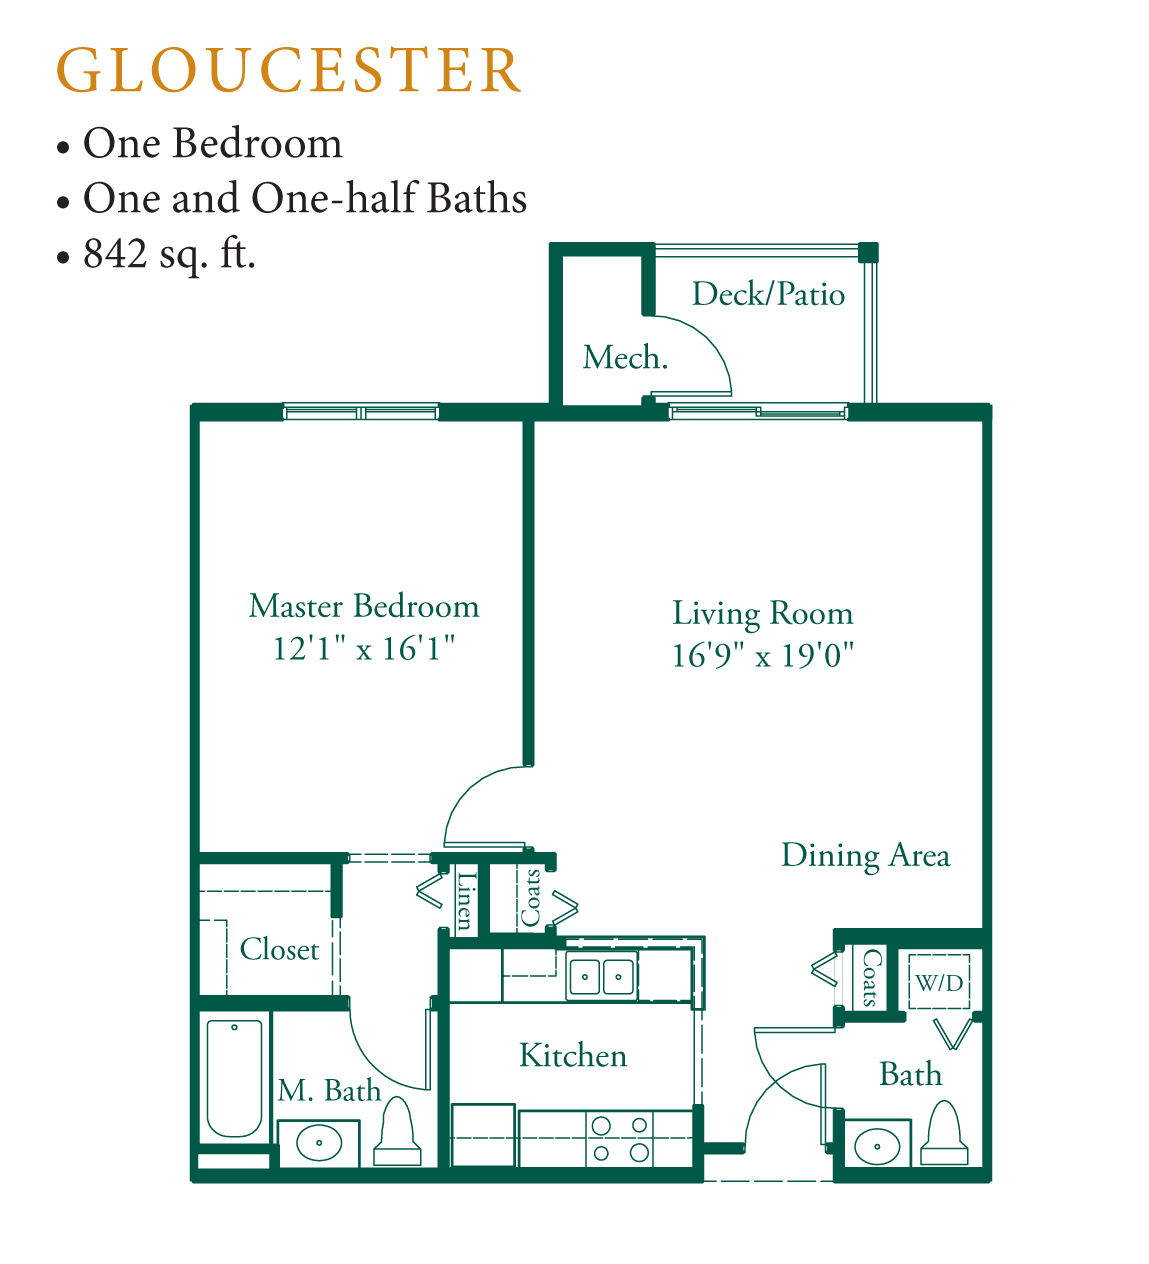 appleton oaks floor plans also available additional floor plans in different sizes handicap accessible units